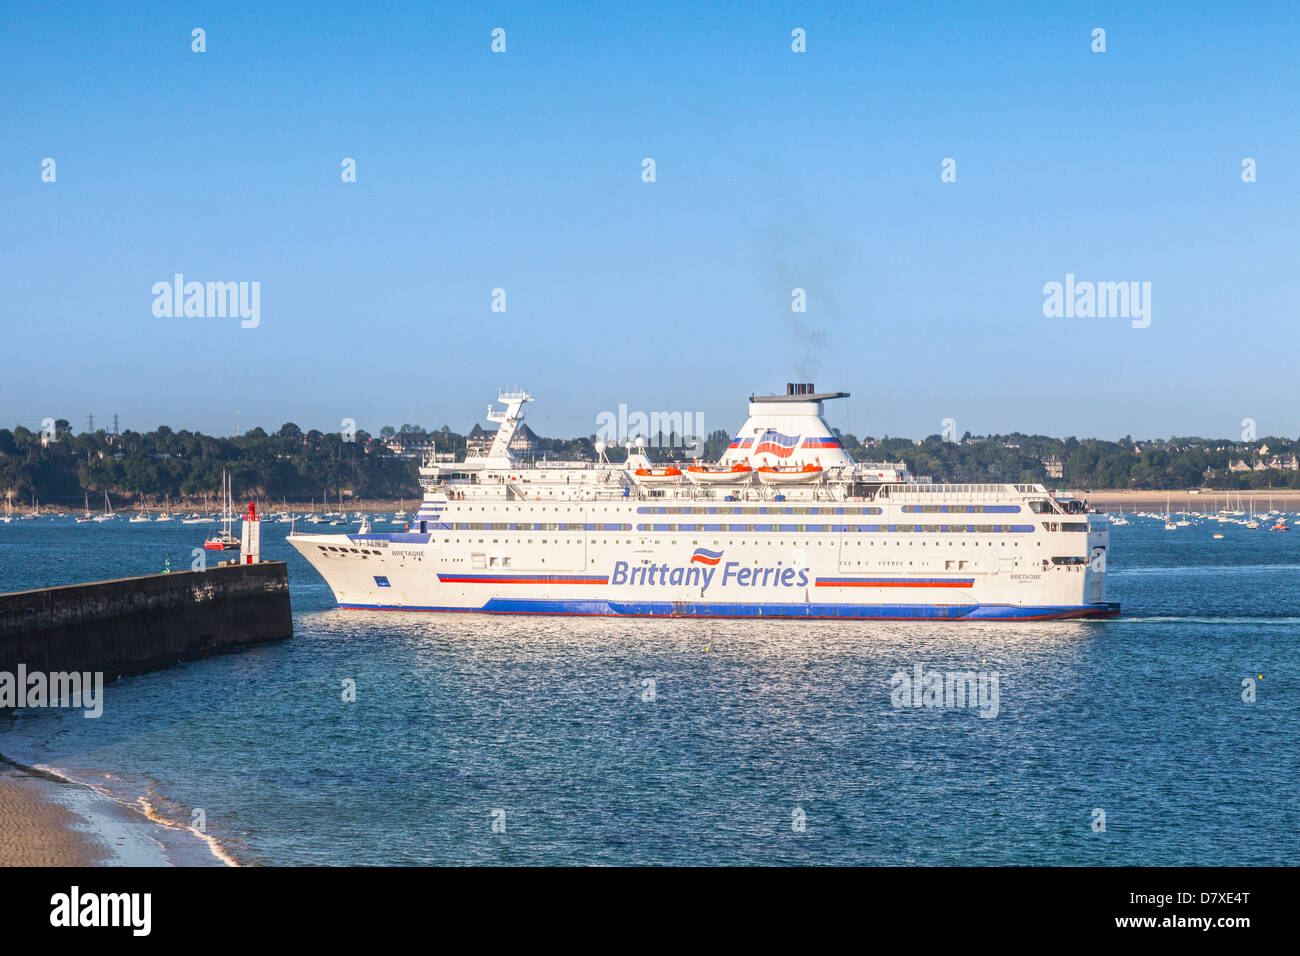 The Brittany Ferries vehicle ferry 'Bretagne' approaches the harbour entrance of St-Malo. - Stock Image